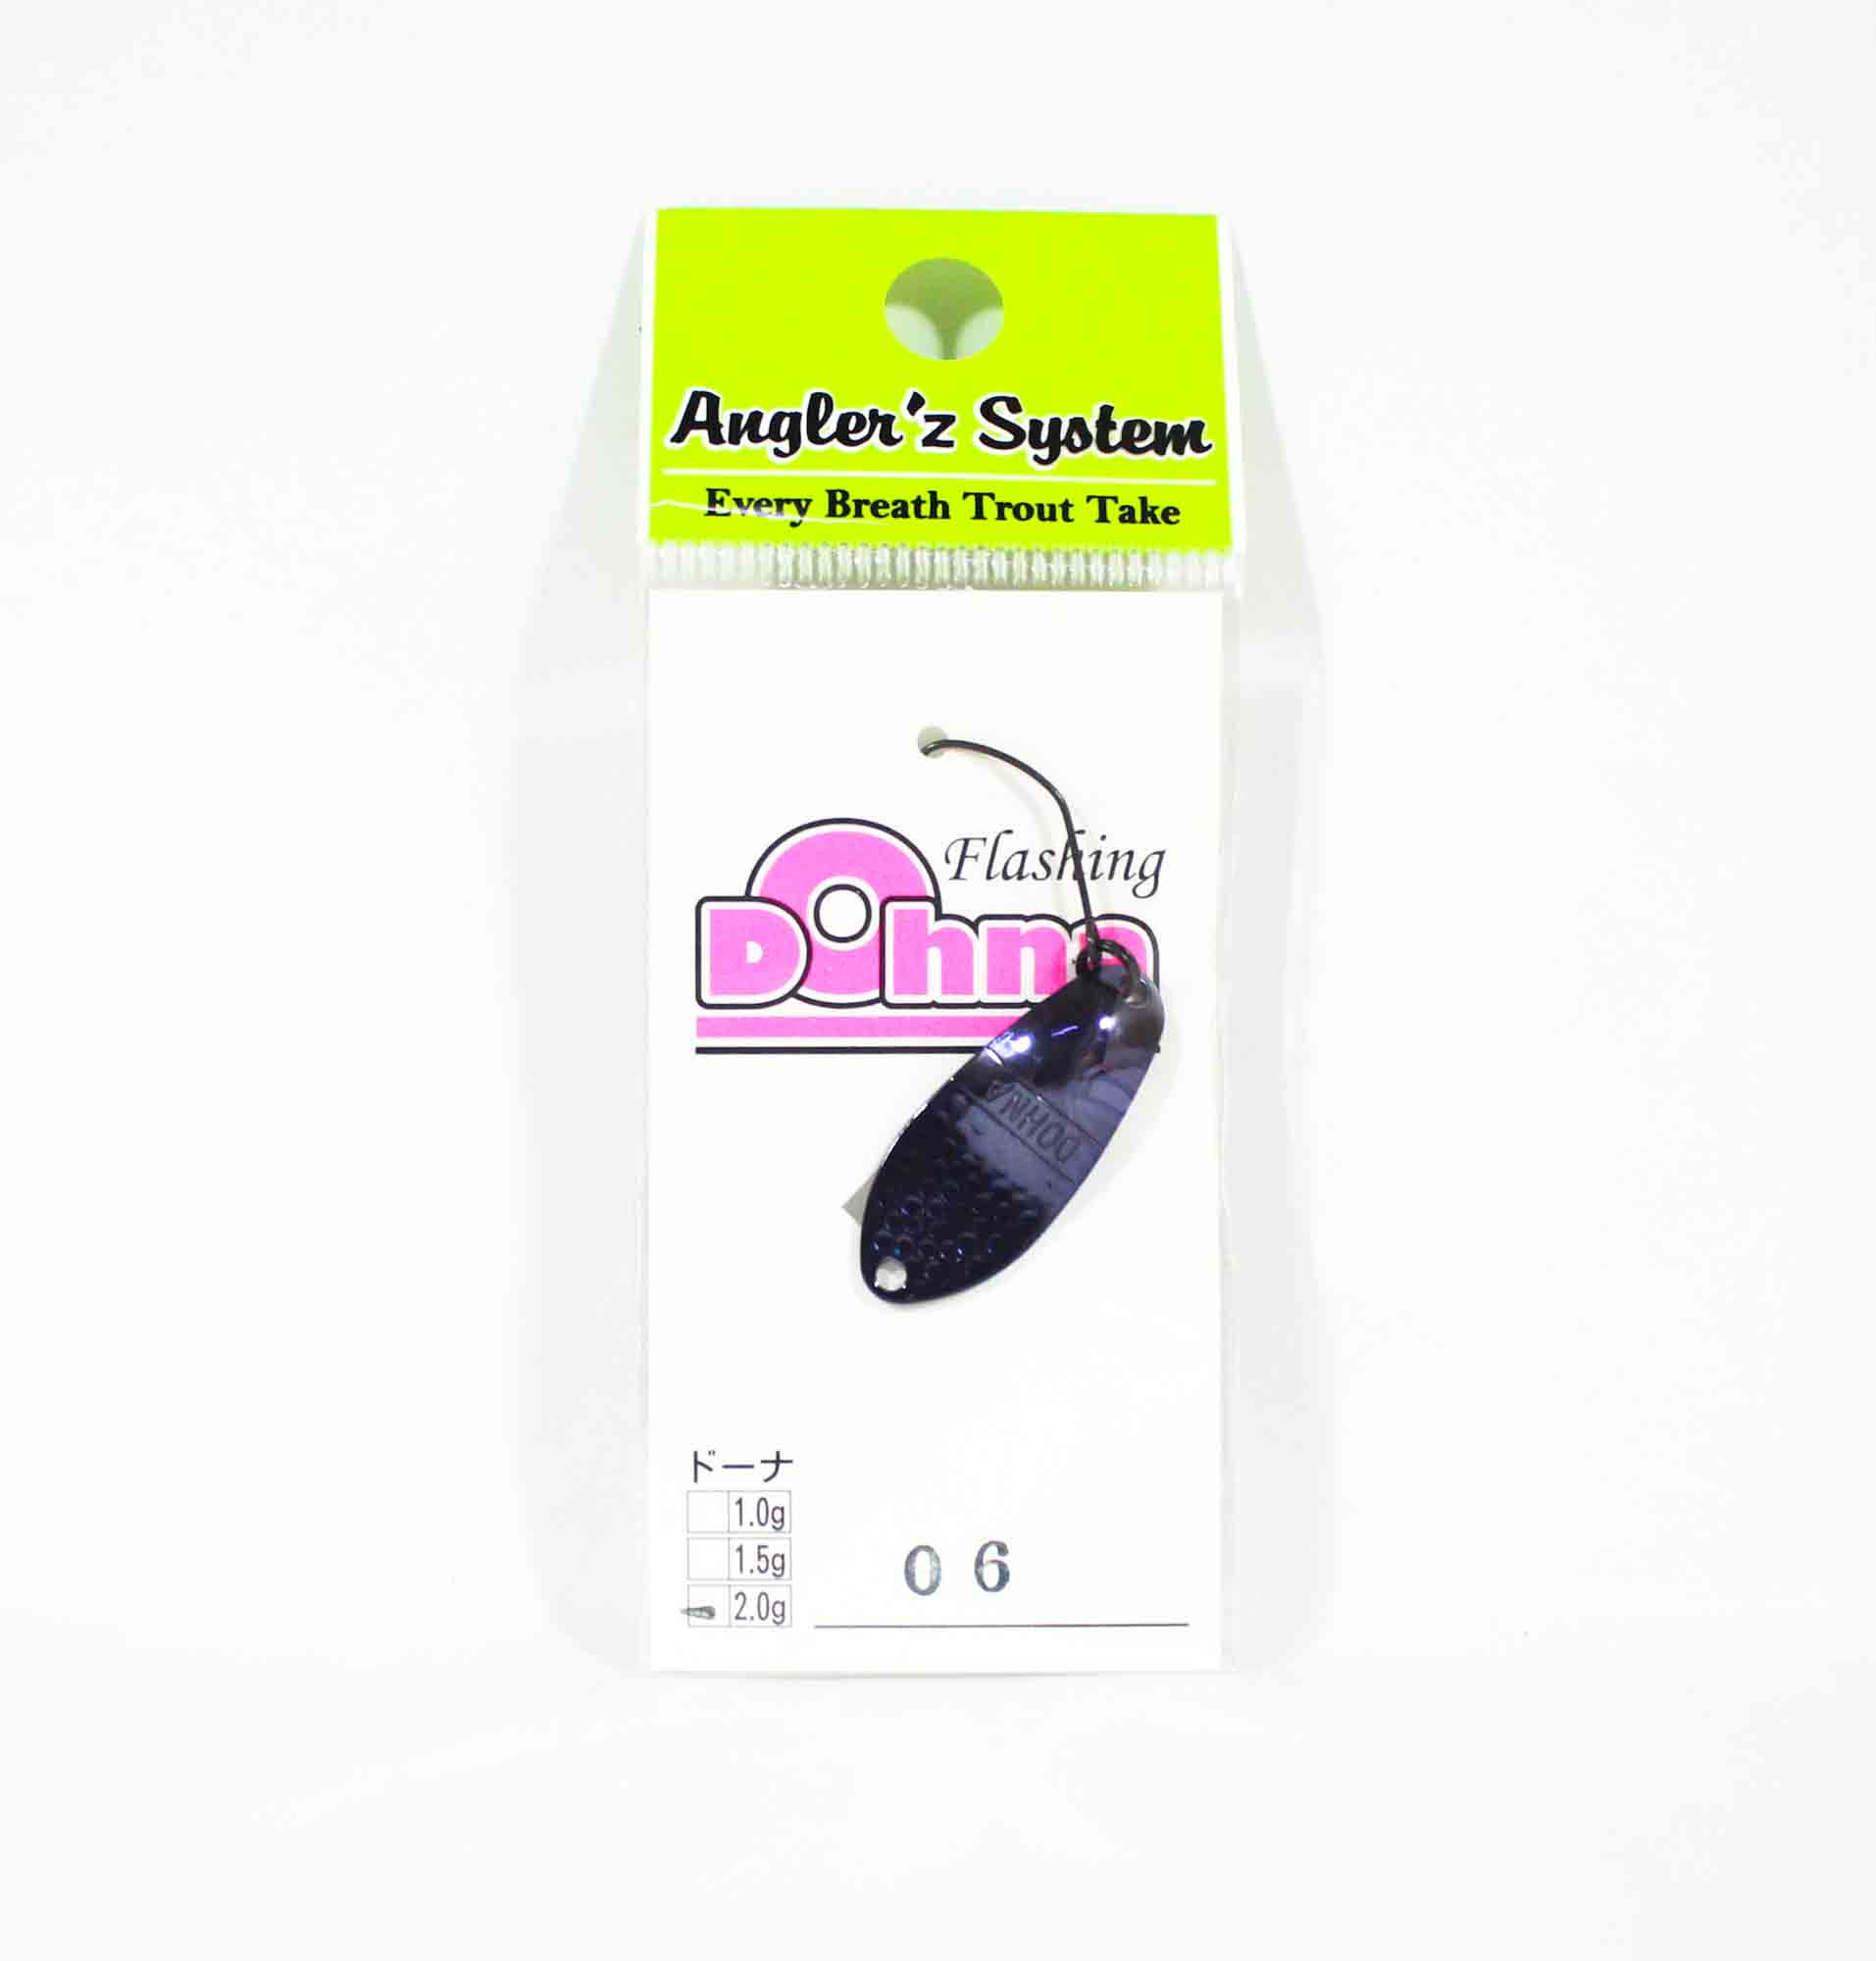 Anglers System Antem Dohna 2.0 grams Spoon Sinking Lure 06 (4503)